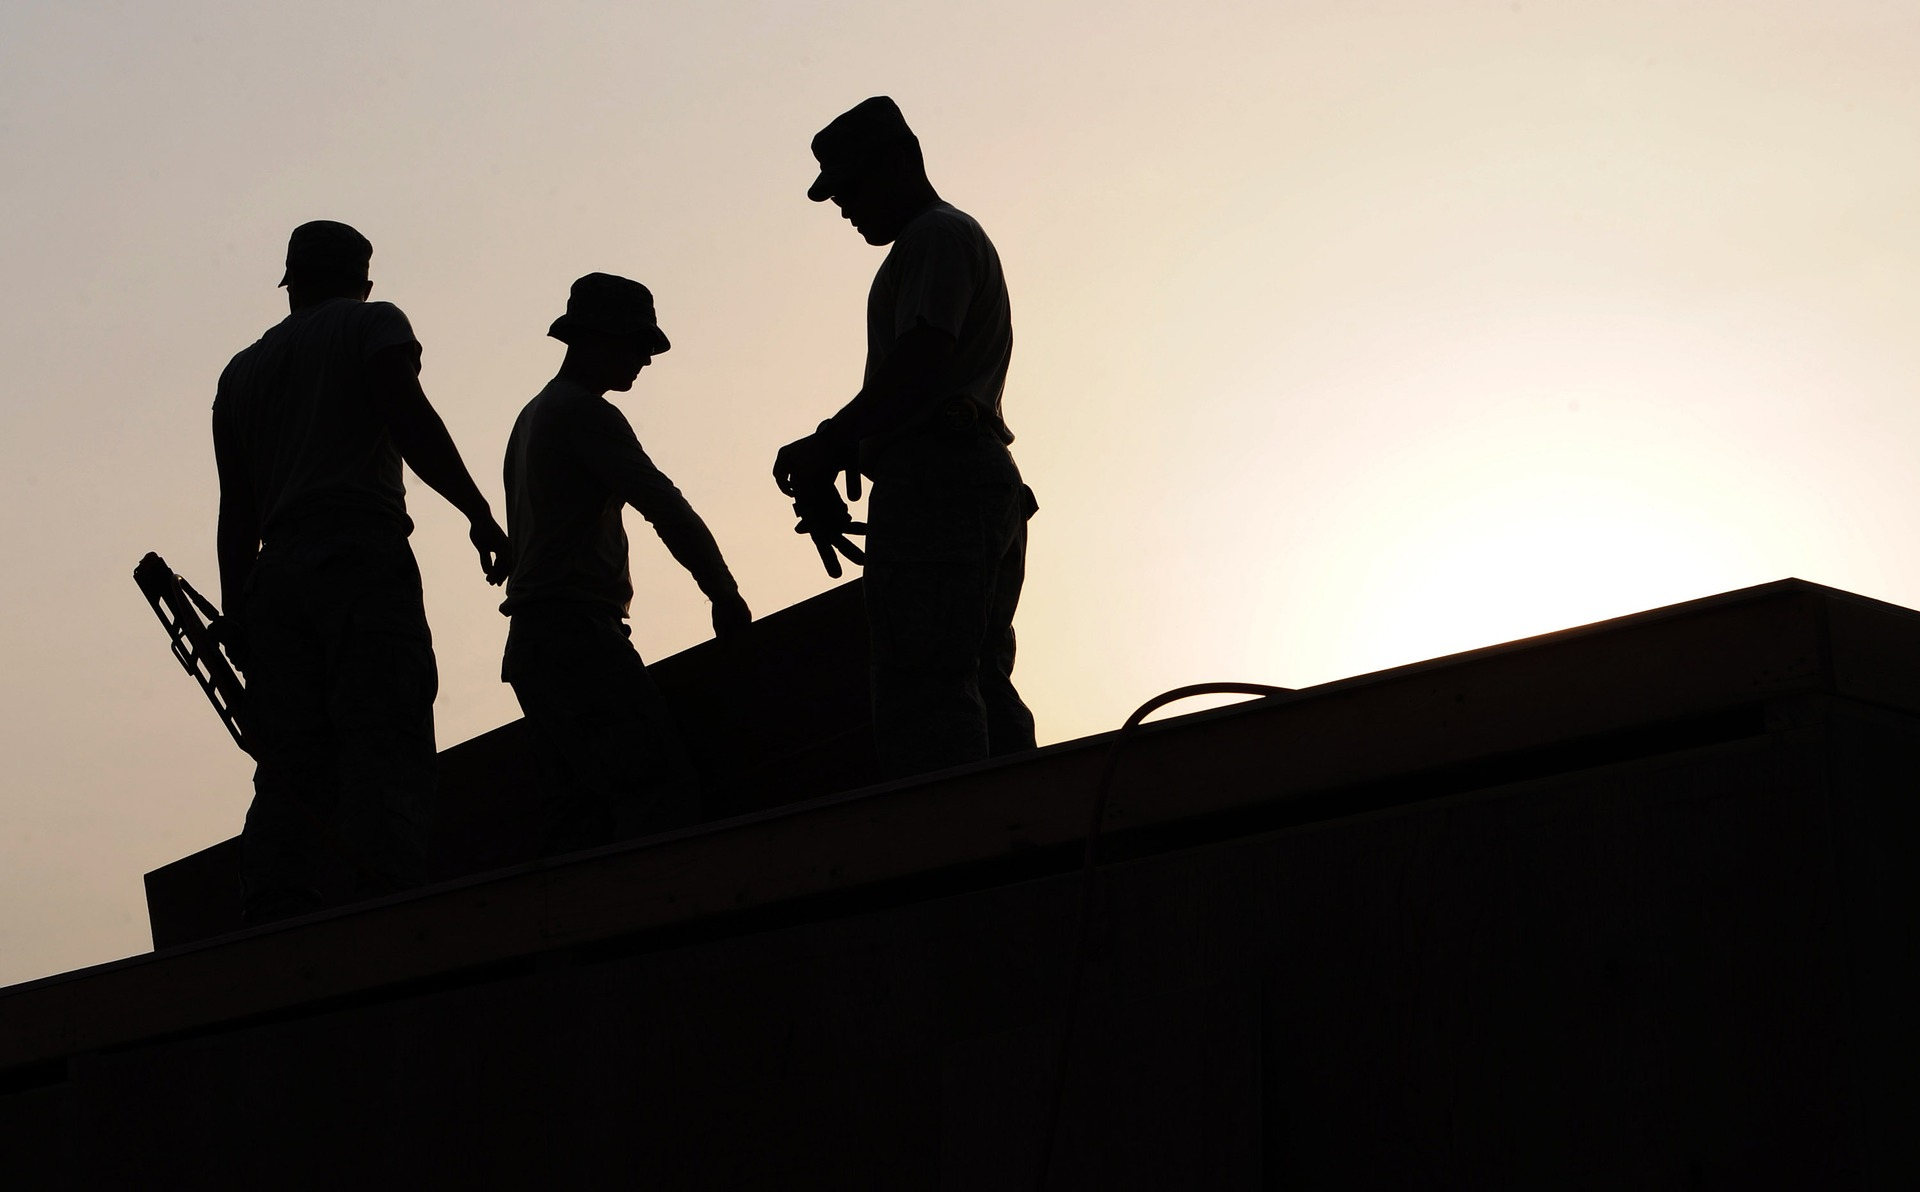 Construction workers on a site. Representing Worker's Compensation